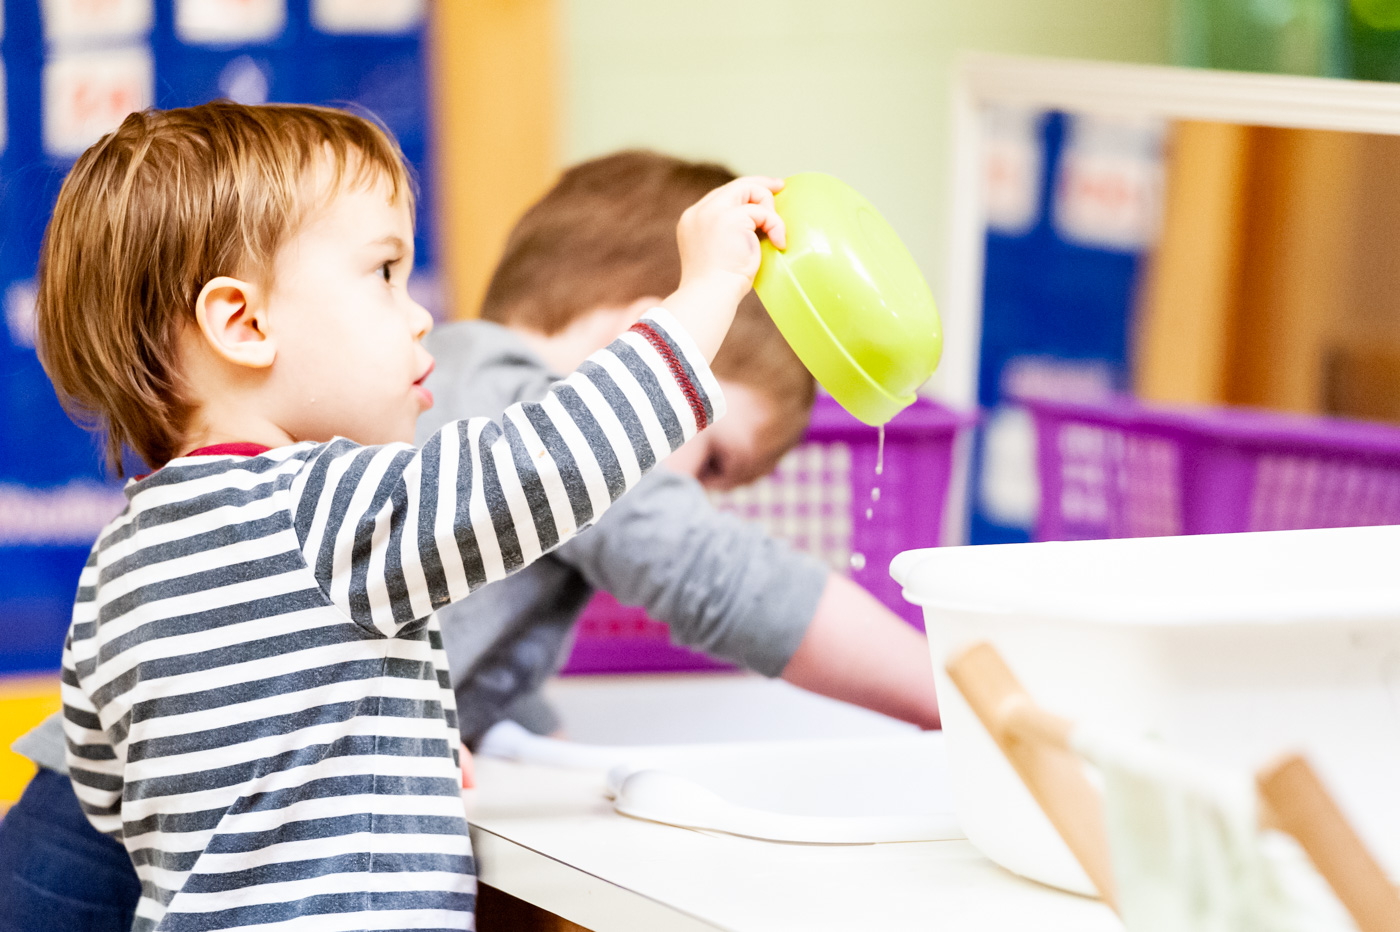 Our youngest children learn to care for their environment, including washing dishes.